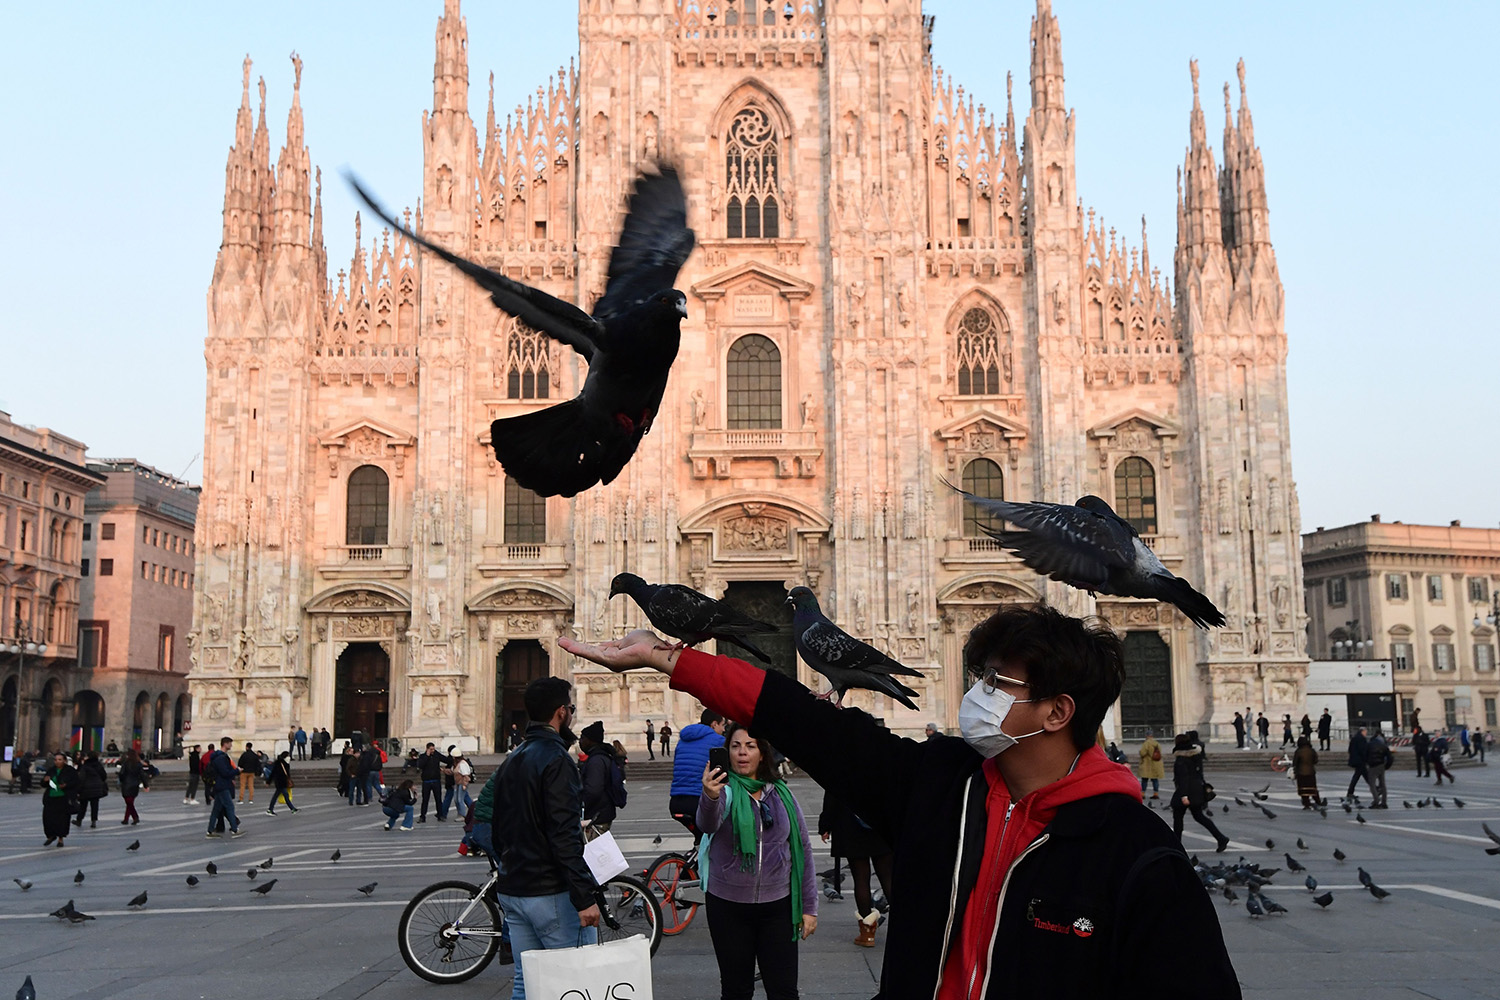 A man wearing a protective mask plays with pigeons in the Piazza del Duomo in central Milan, on Feb. 24, following security measures taken in northern Italy against the novel coronavirus.MIGUEL MEDINA/AFP via Getty Images